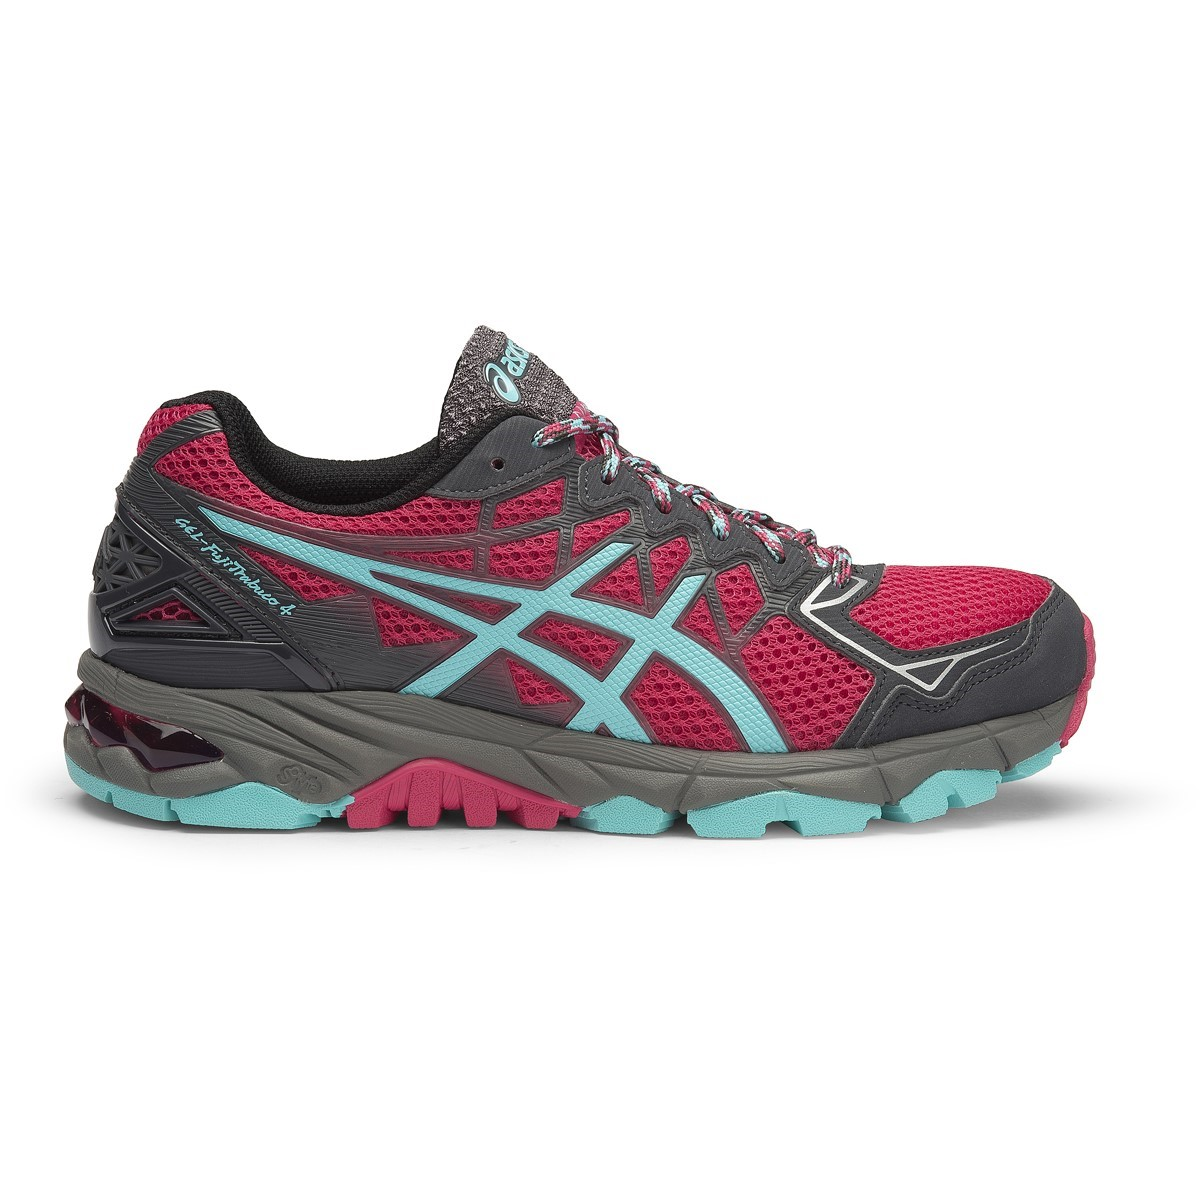 asics gel fuji trabuco 4 womens trail running shoes. Black Bedroom Furniture Sets. Home Design Ideas